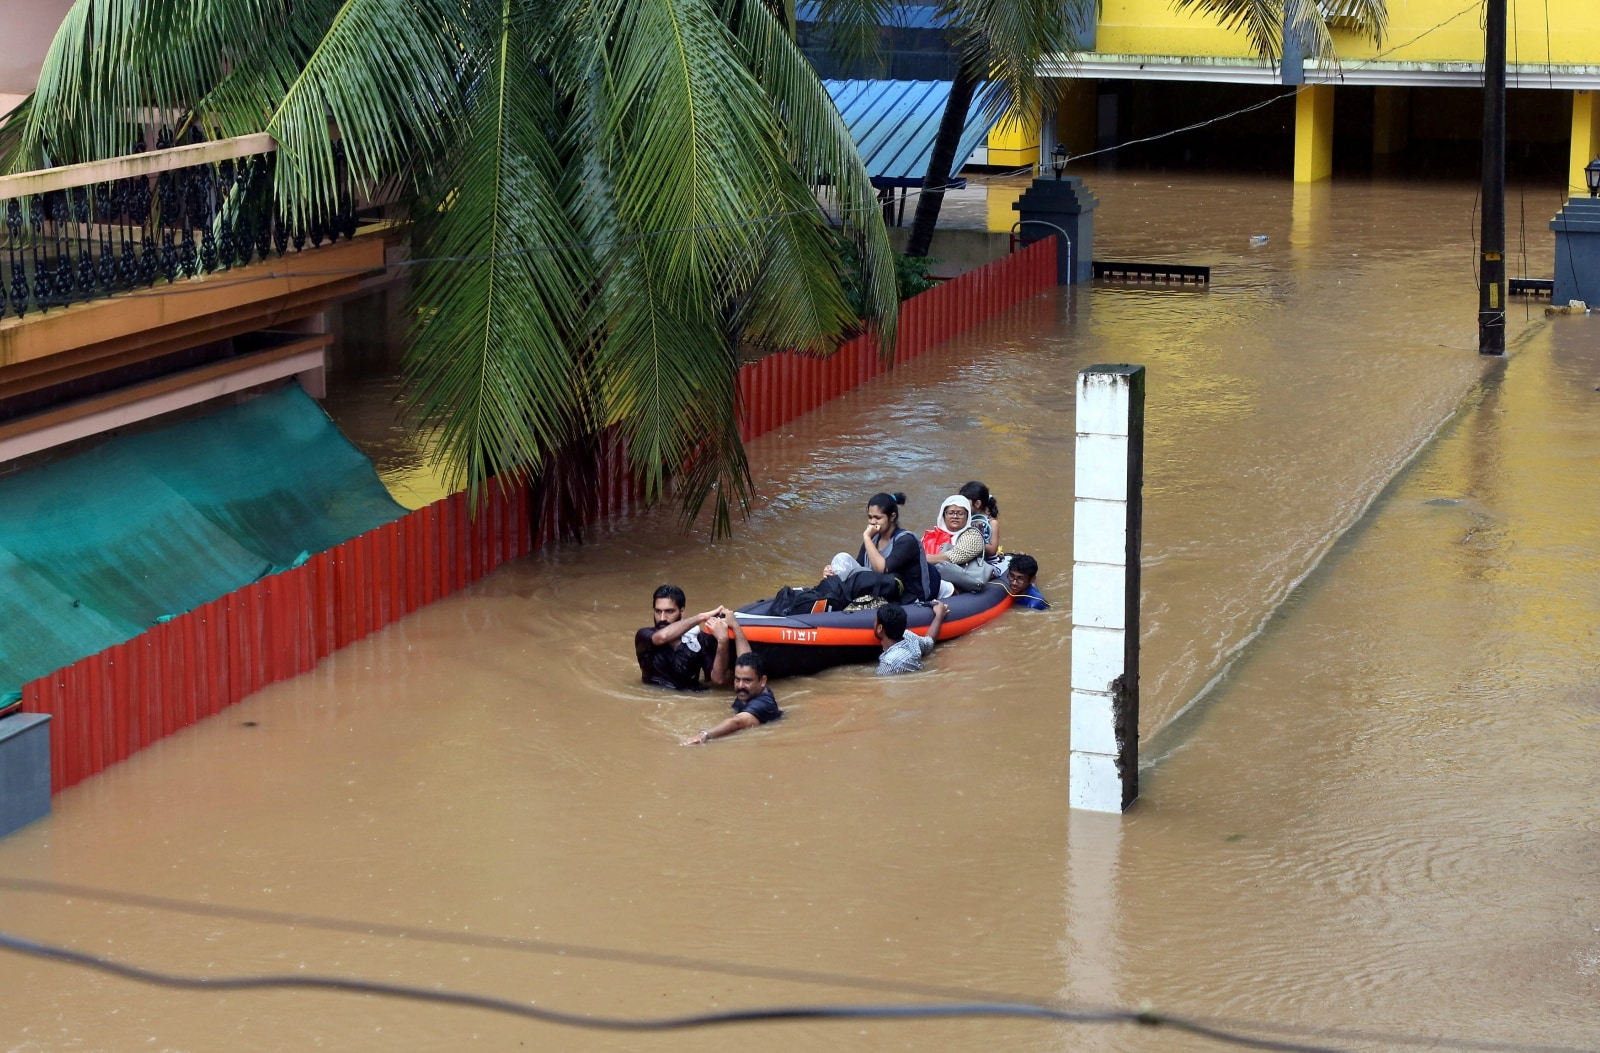 Rescue workers evacuate people from flooded areas after the opening of Idamalayr, Cheruthoni and Mullaperiyar dam gates following heavy rains, on the outskirts of Kochi, India. August 16, 2018. REUTERS/Sivaram V/File Photo